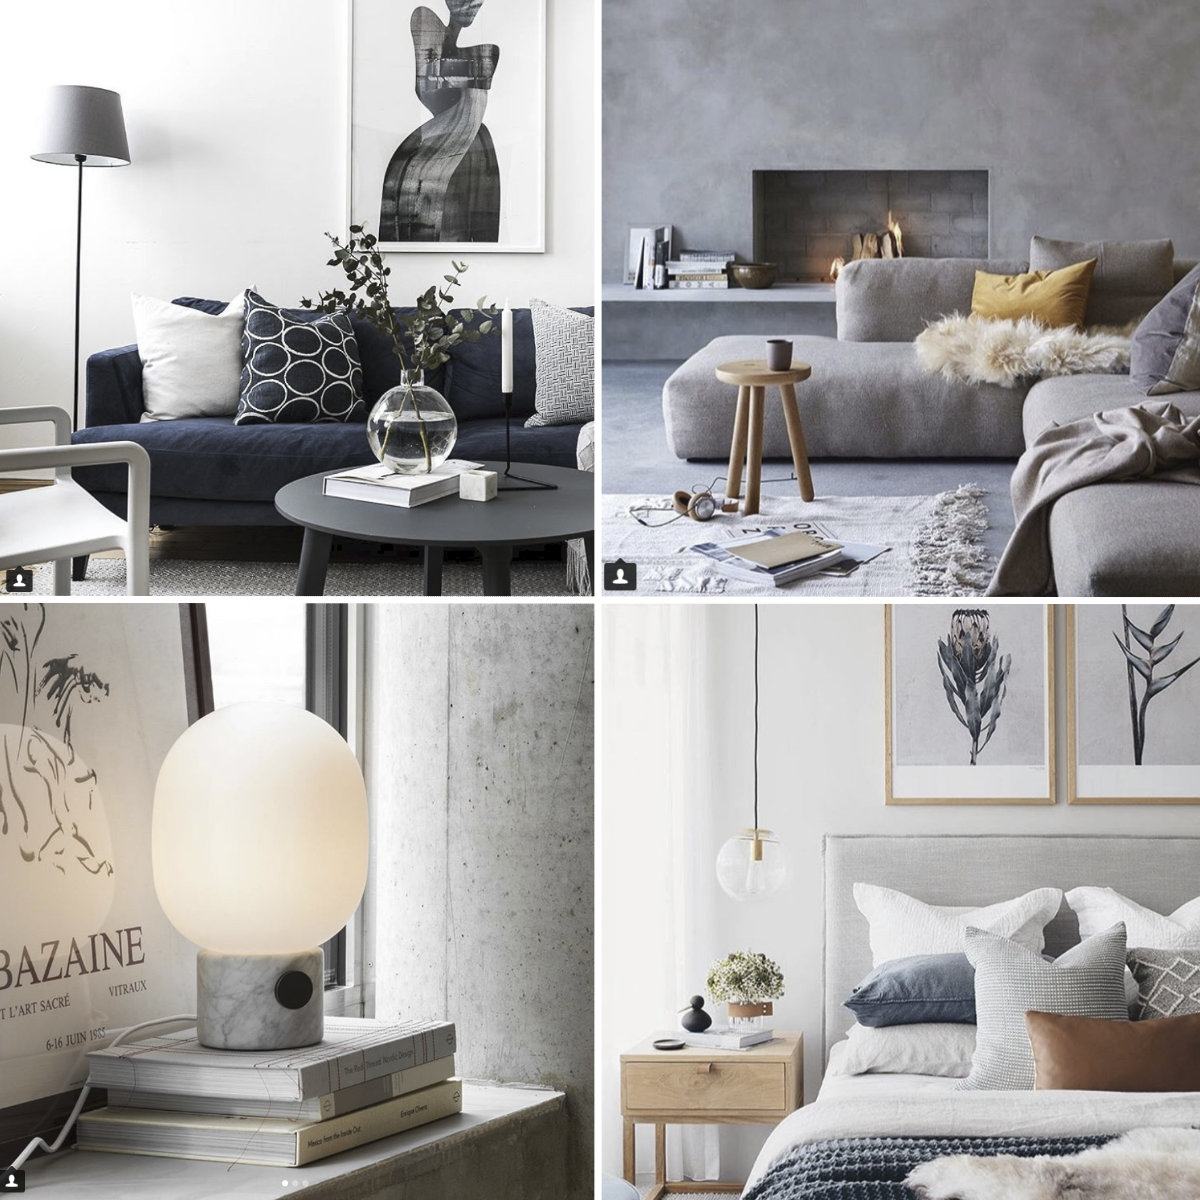 Styling your renders to appeal to your target audience is a key element of creating a high quality 3d render that sells!